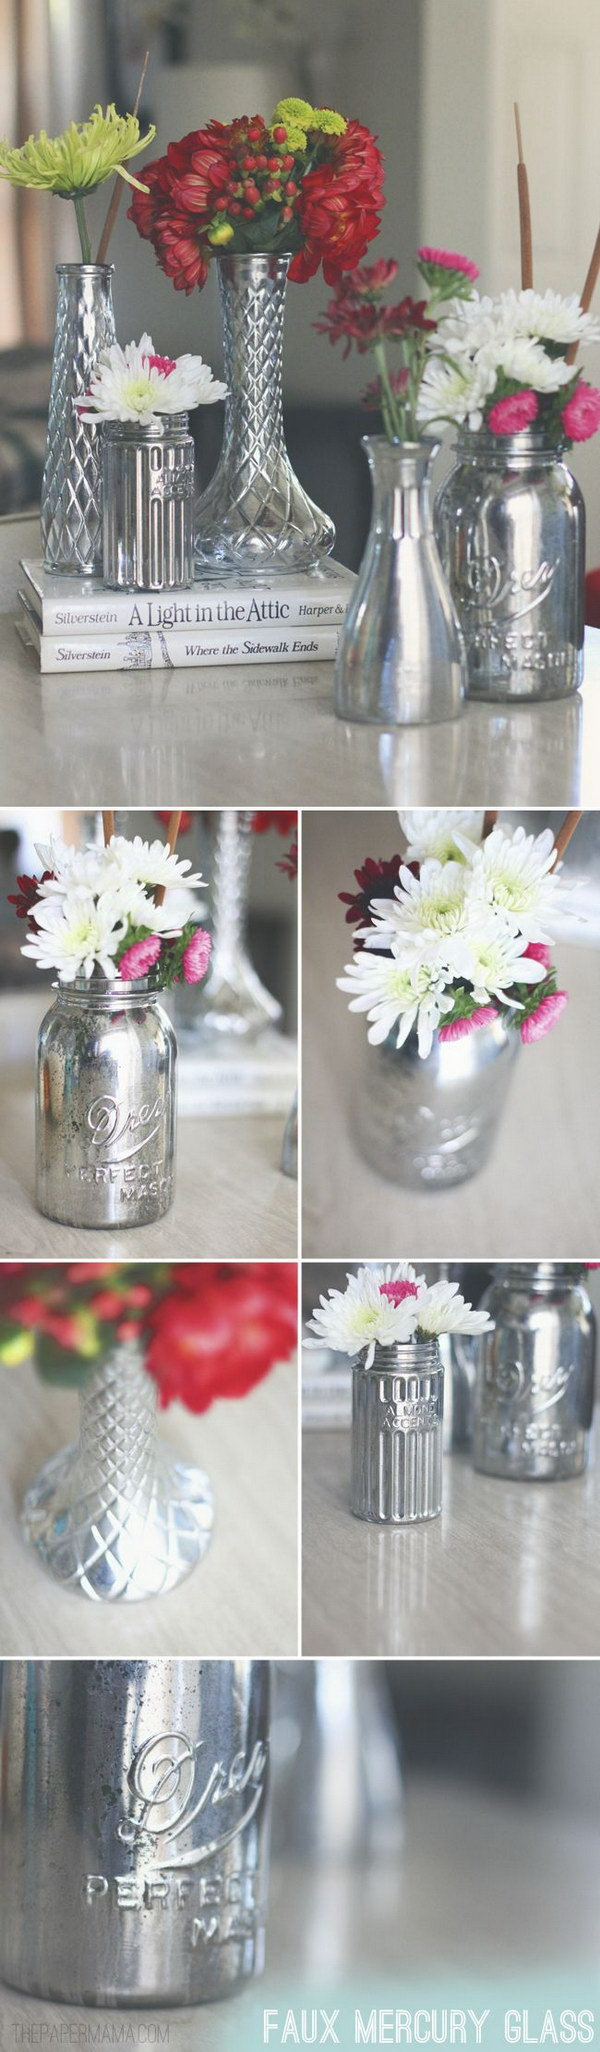 Faux Mercury Glass Vases.